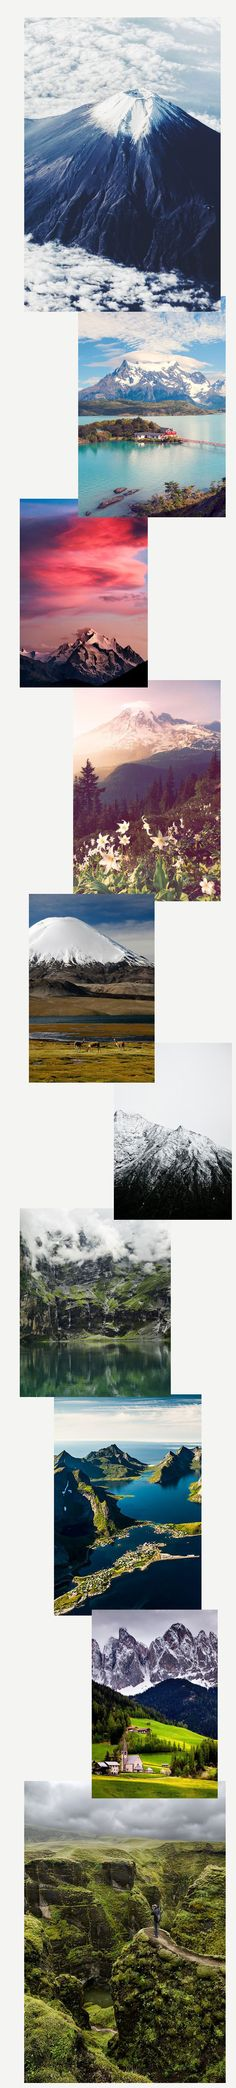 Travel Daydreaming: Climb Every Mountain by The Wanderlove Collective Zine, Climbing, Travel Inspiration, Mountain, Collage, Collages, Mountaineering, Collage Art, Hiking